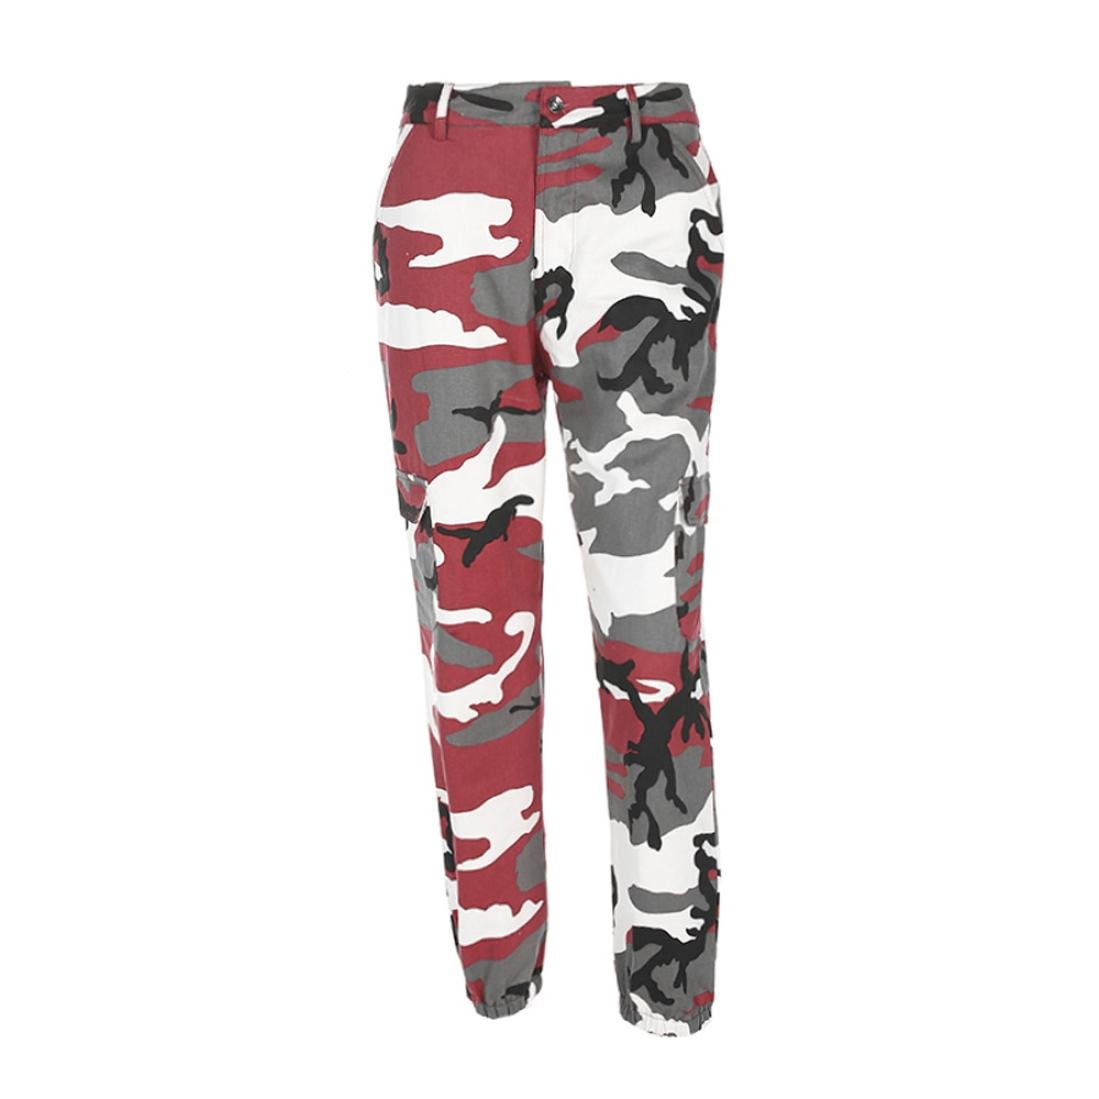 Women Camouflage Trousers, Changeshopping Sports Camo Cargo Pants Outdoor Jeans Changeshopping-1406